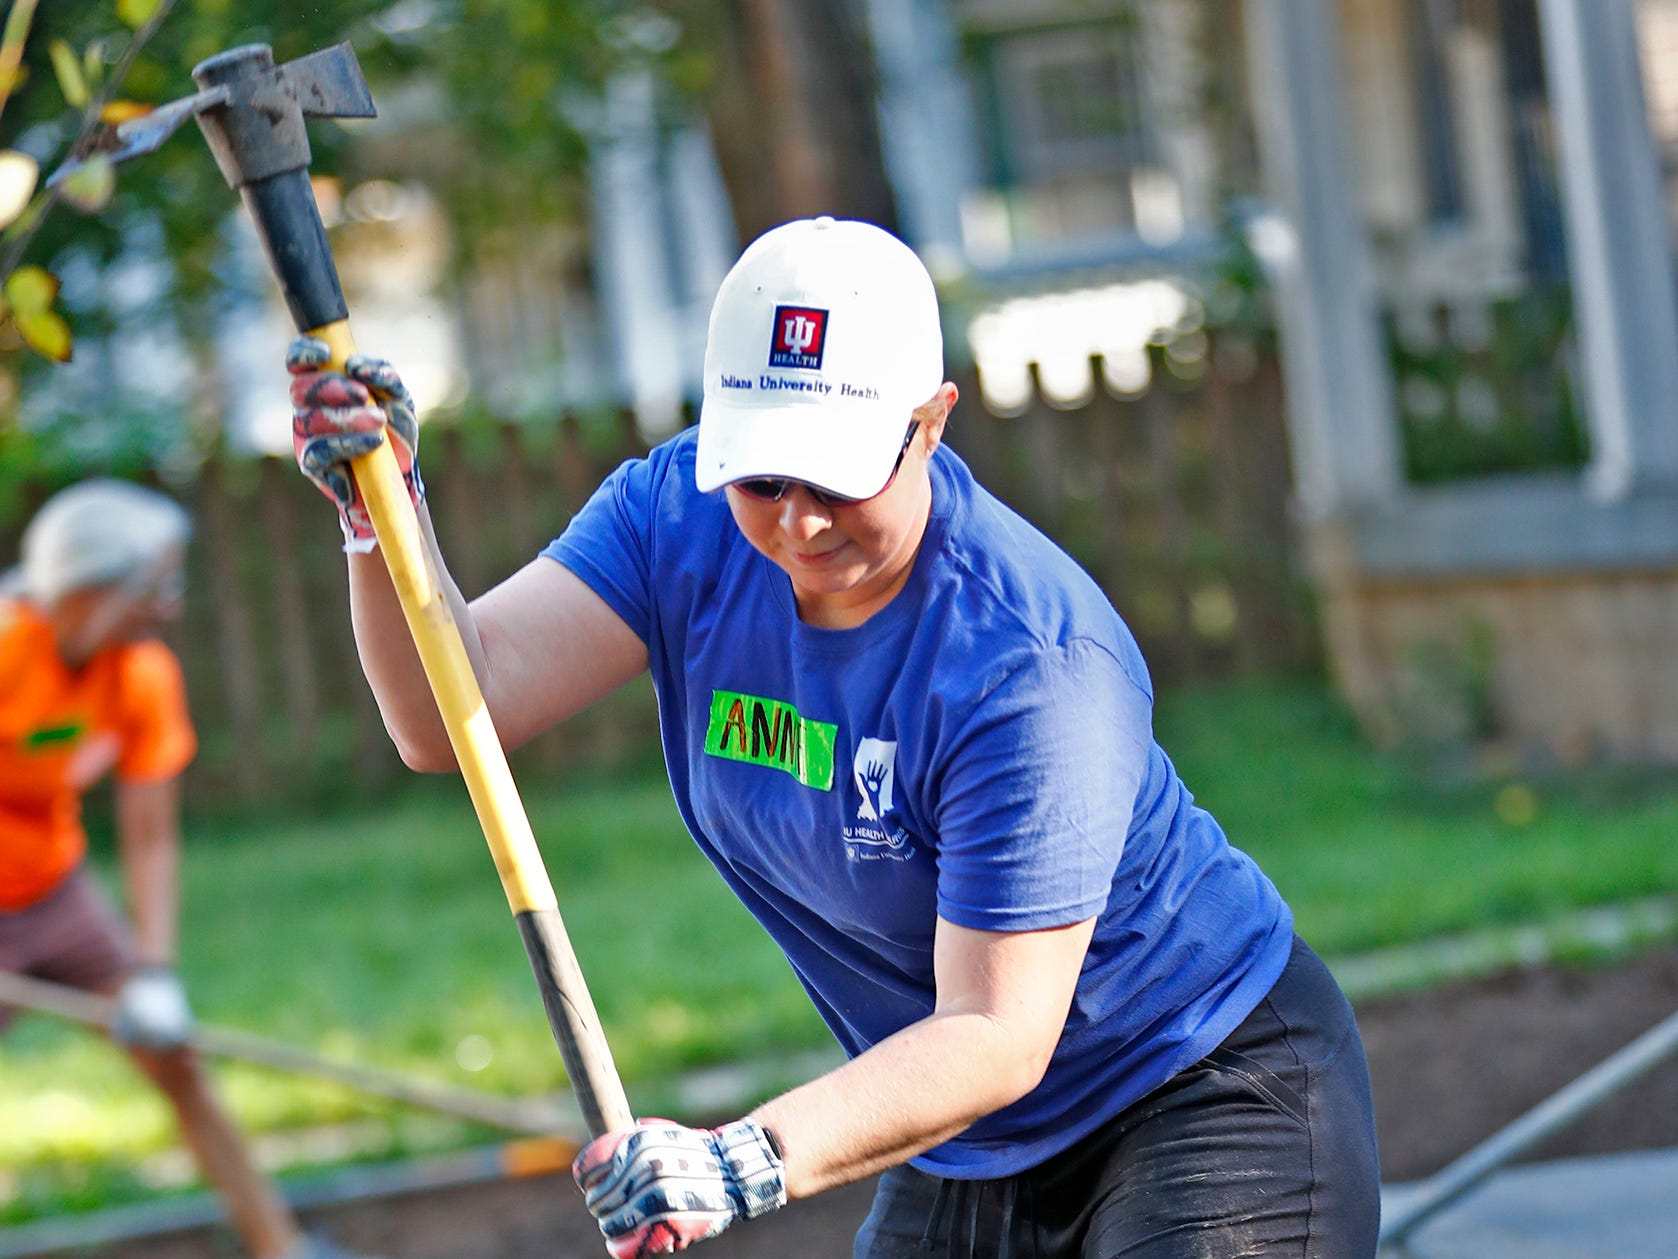 Annie Montz swings a pickaxe while working on landscaping, during the 10th Annual IU Health Day of Service, Friday, Sept. 13, 2018.  IU Health team members donated time and effort building and finishing a Habitat for Humanity home in the 3700 block of Kenwood Ave. For 22 days, with partner volunteers, over 250 members of the IU Health team have donated more than 1680 hours at the house that will become the new home for the Ndatira family.